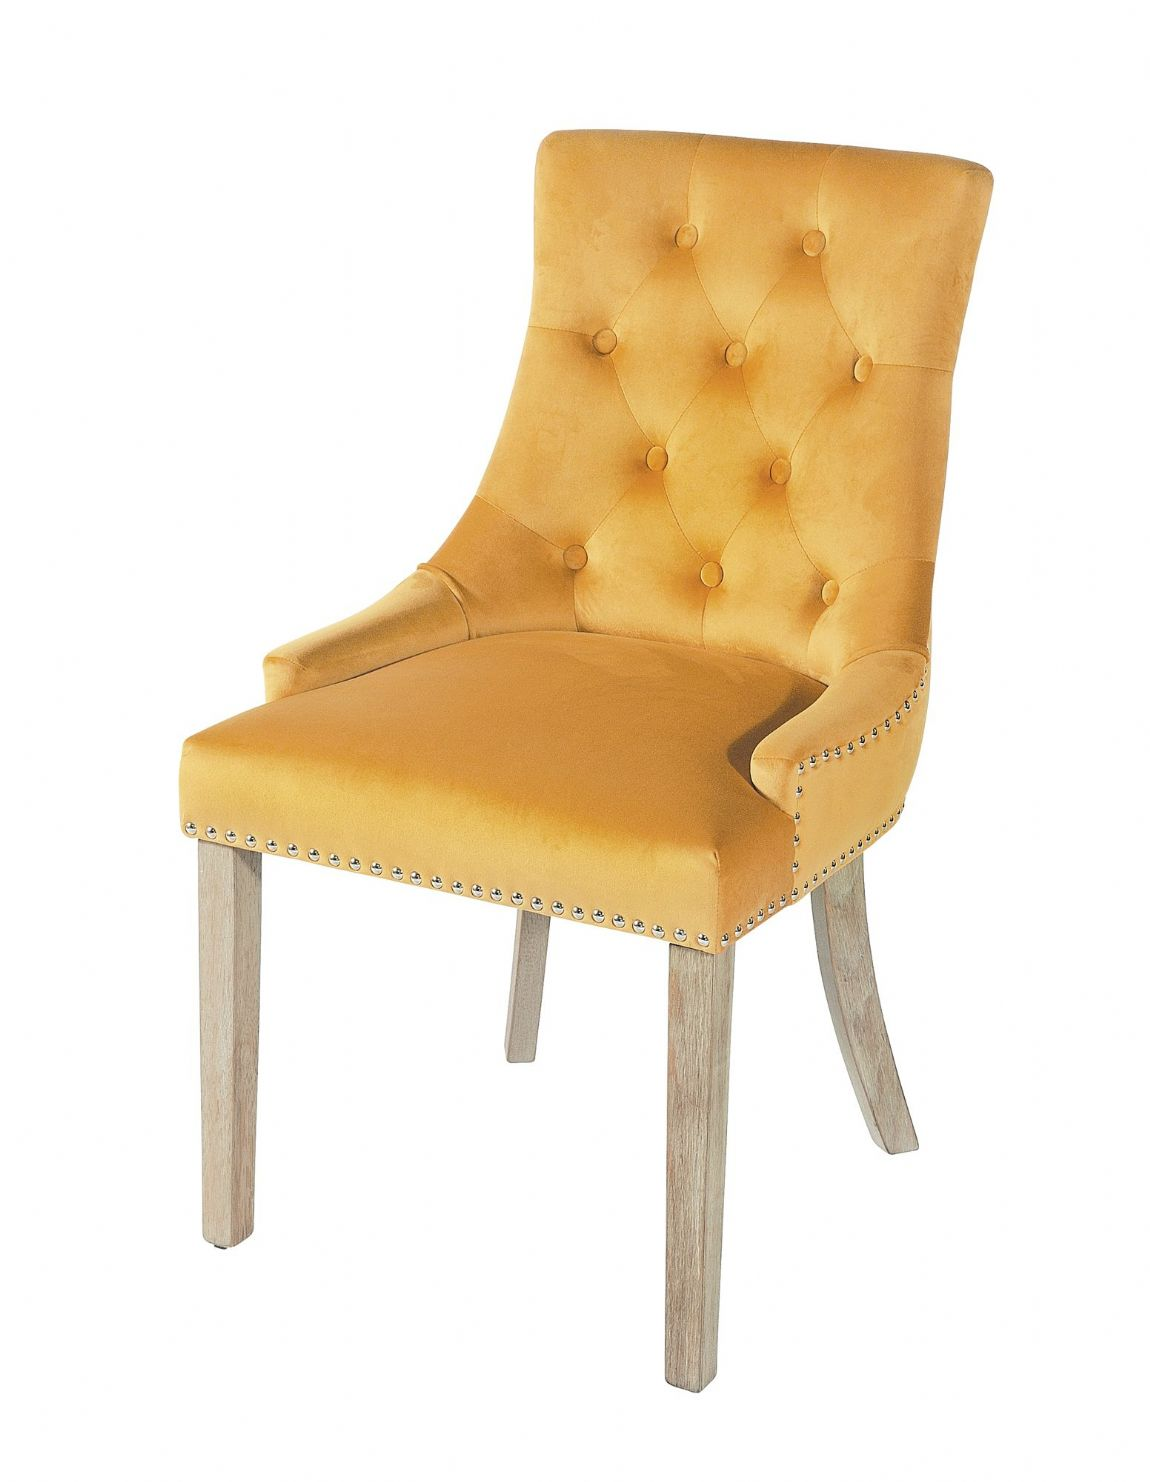 Duporth Mustard Yellow Velvet Upholstered Chair - UK Mainland Delivery